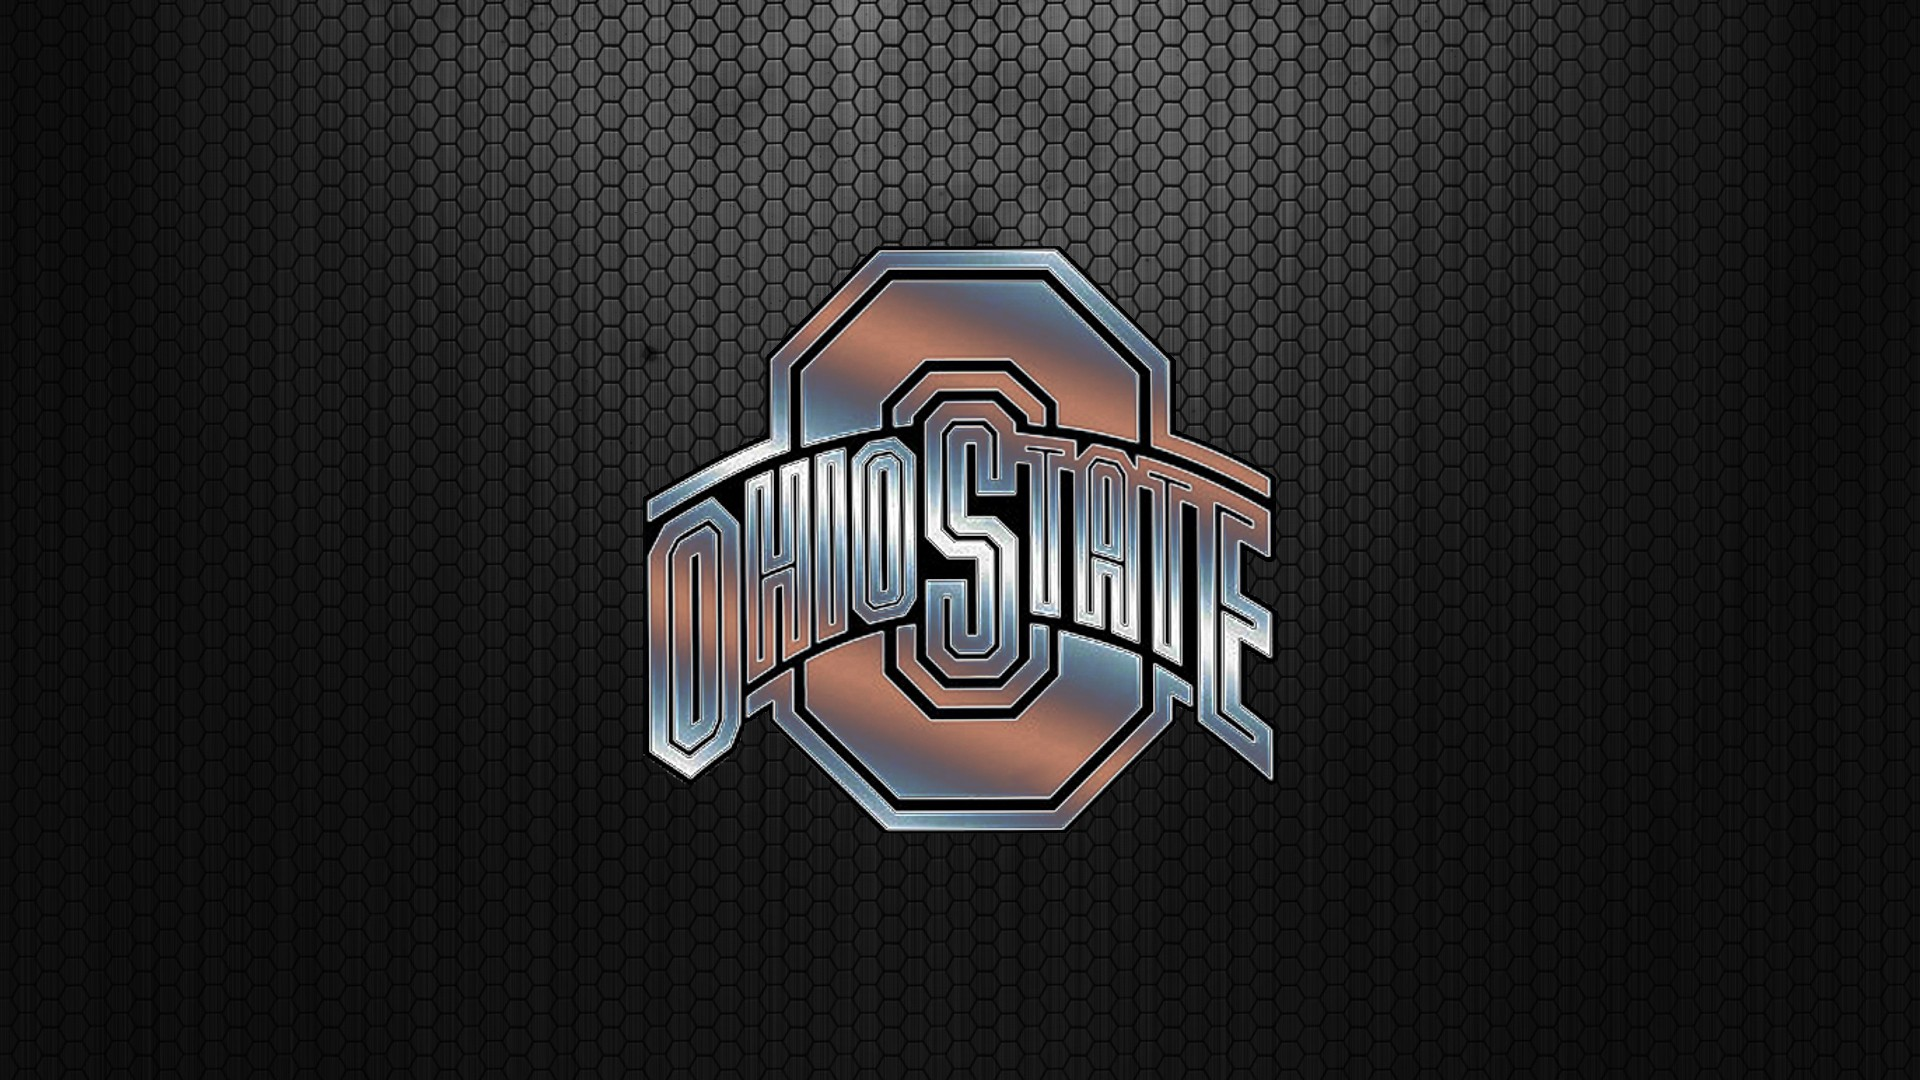 Wallpapers Ohio State Football 1024 X 576 596 Kb Png HD Wallpapers .